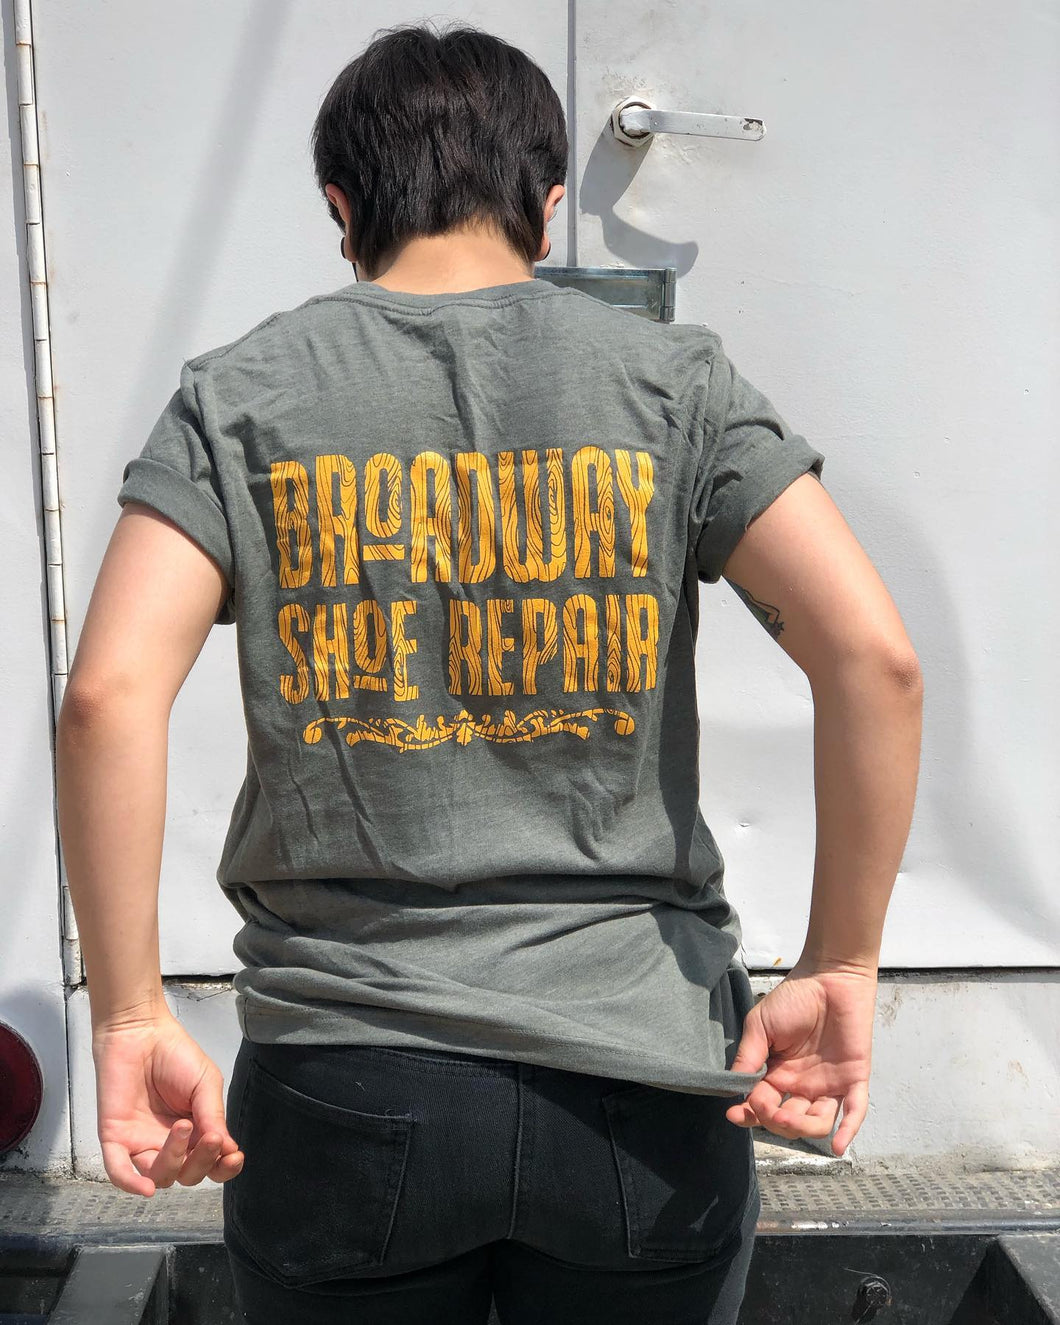 Broadway Shoe Repair Tee Shirt